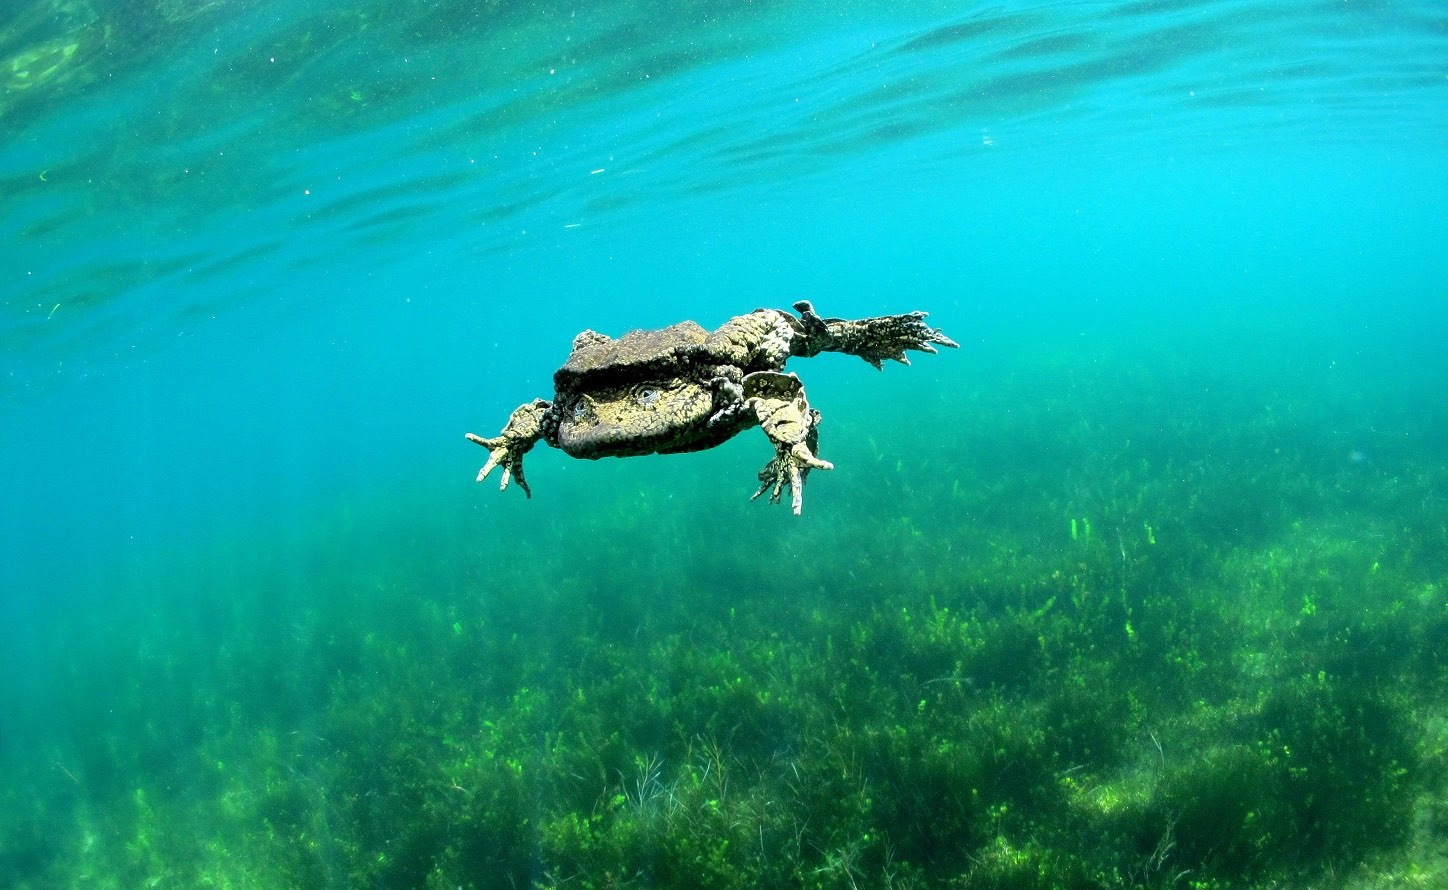 The Titicaca Water Frog